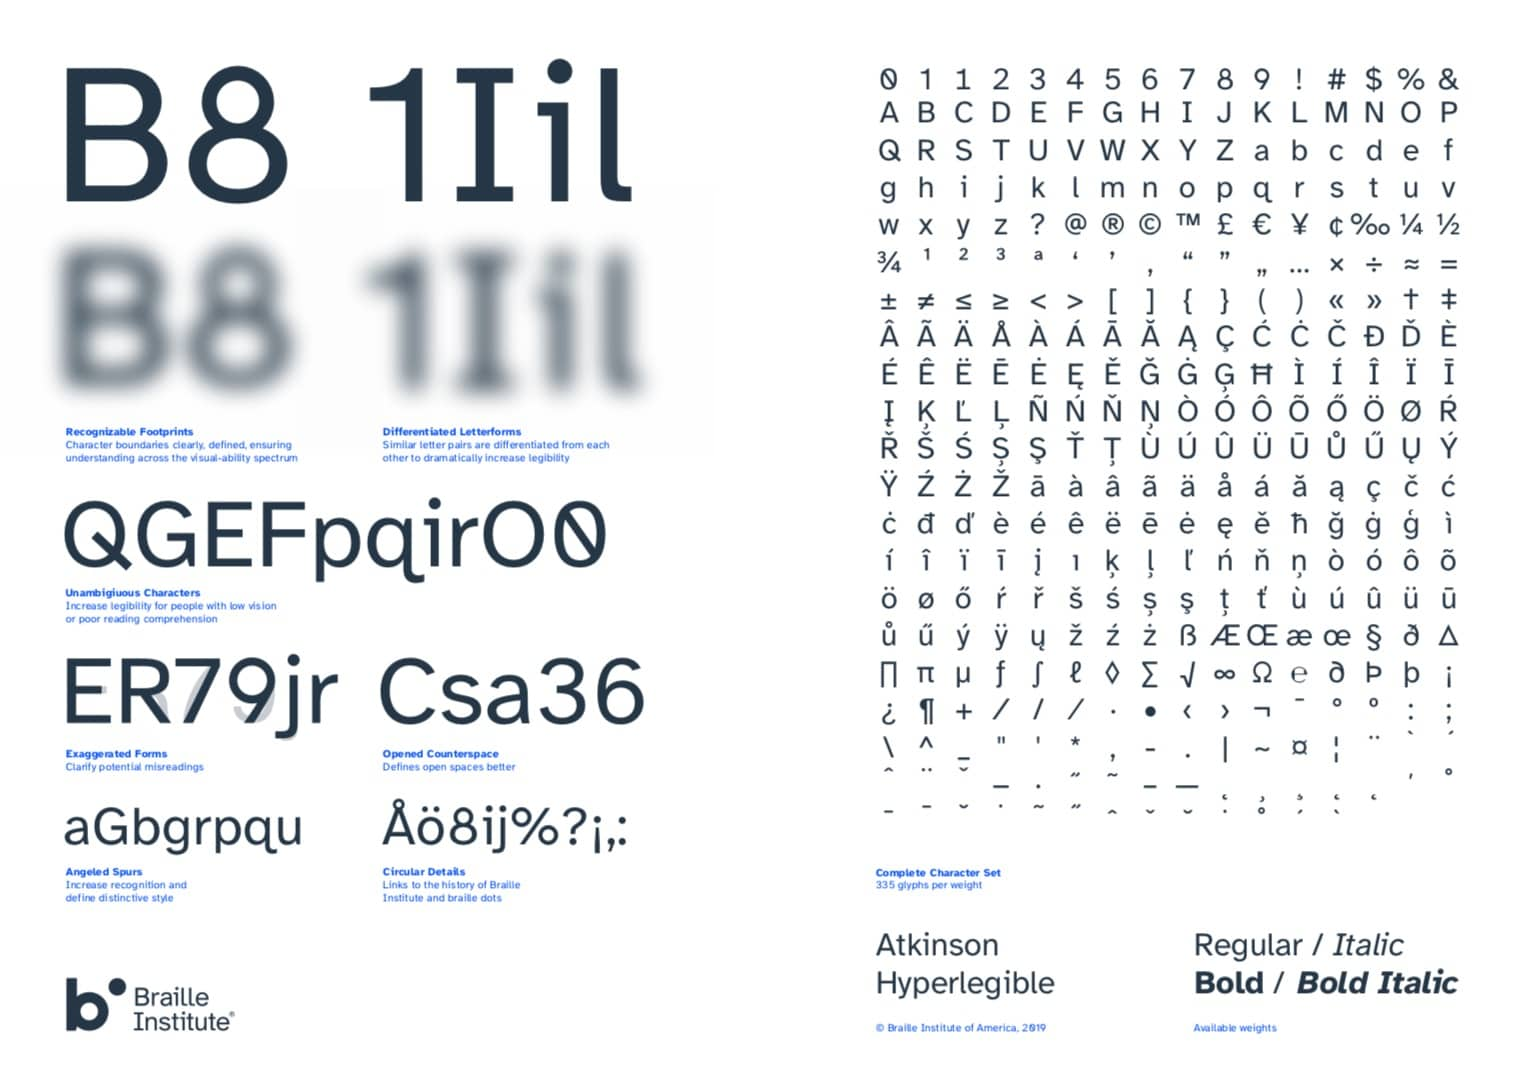 Atkinson Hyperlegible Typeface Free Download